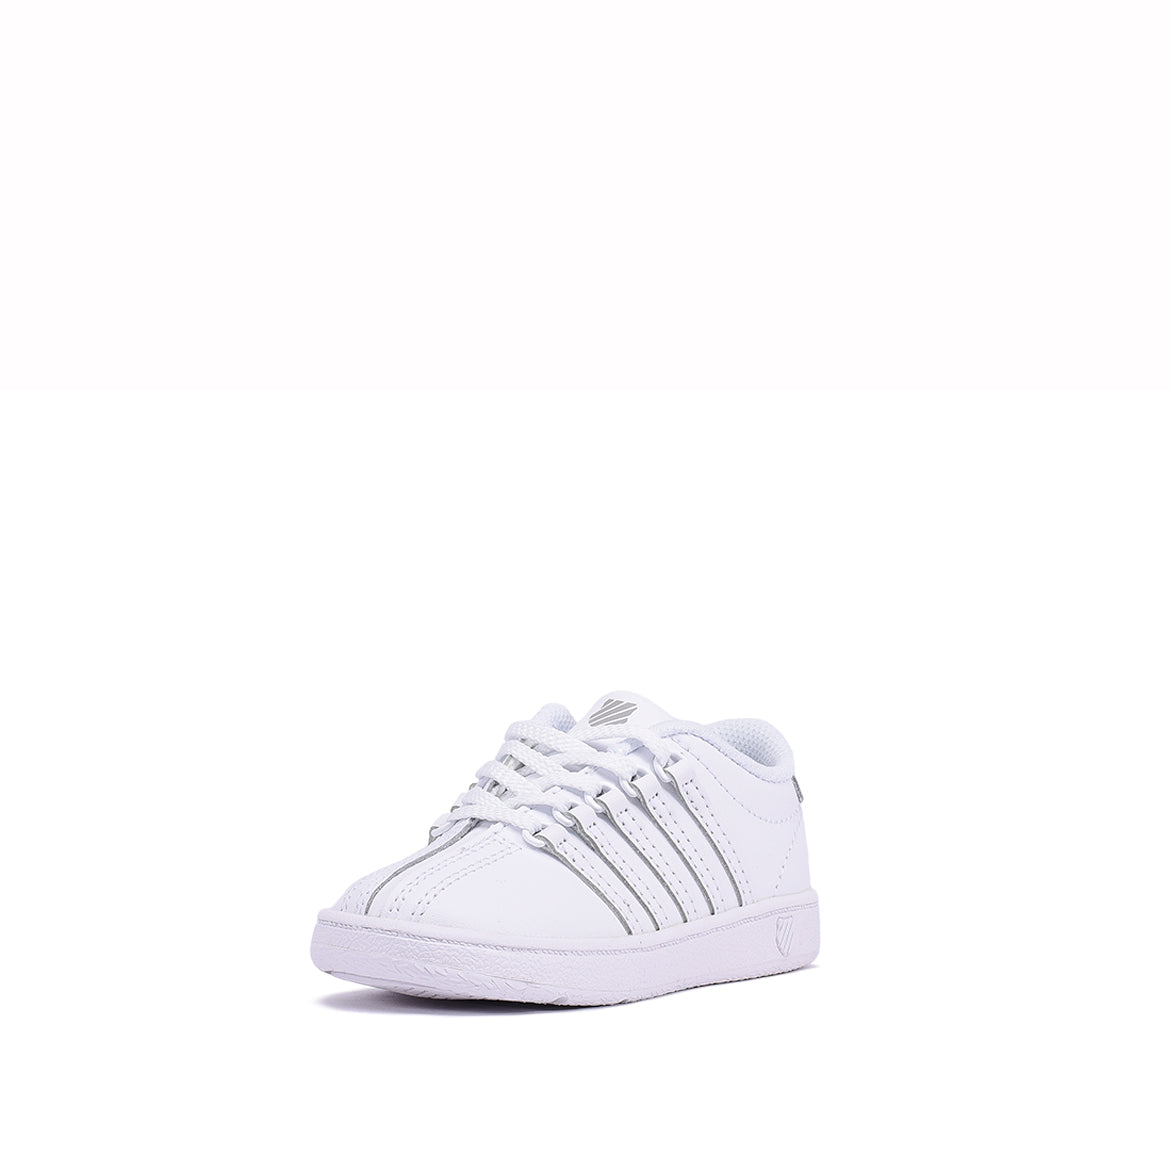 CLASSIC VN LOW (TD) - WHITE / WHITE